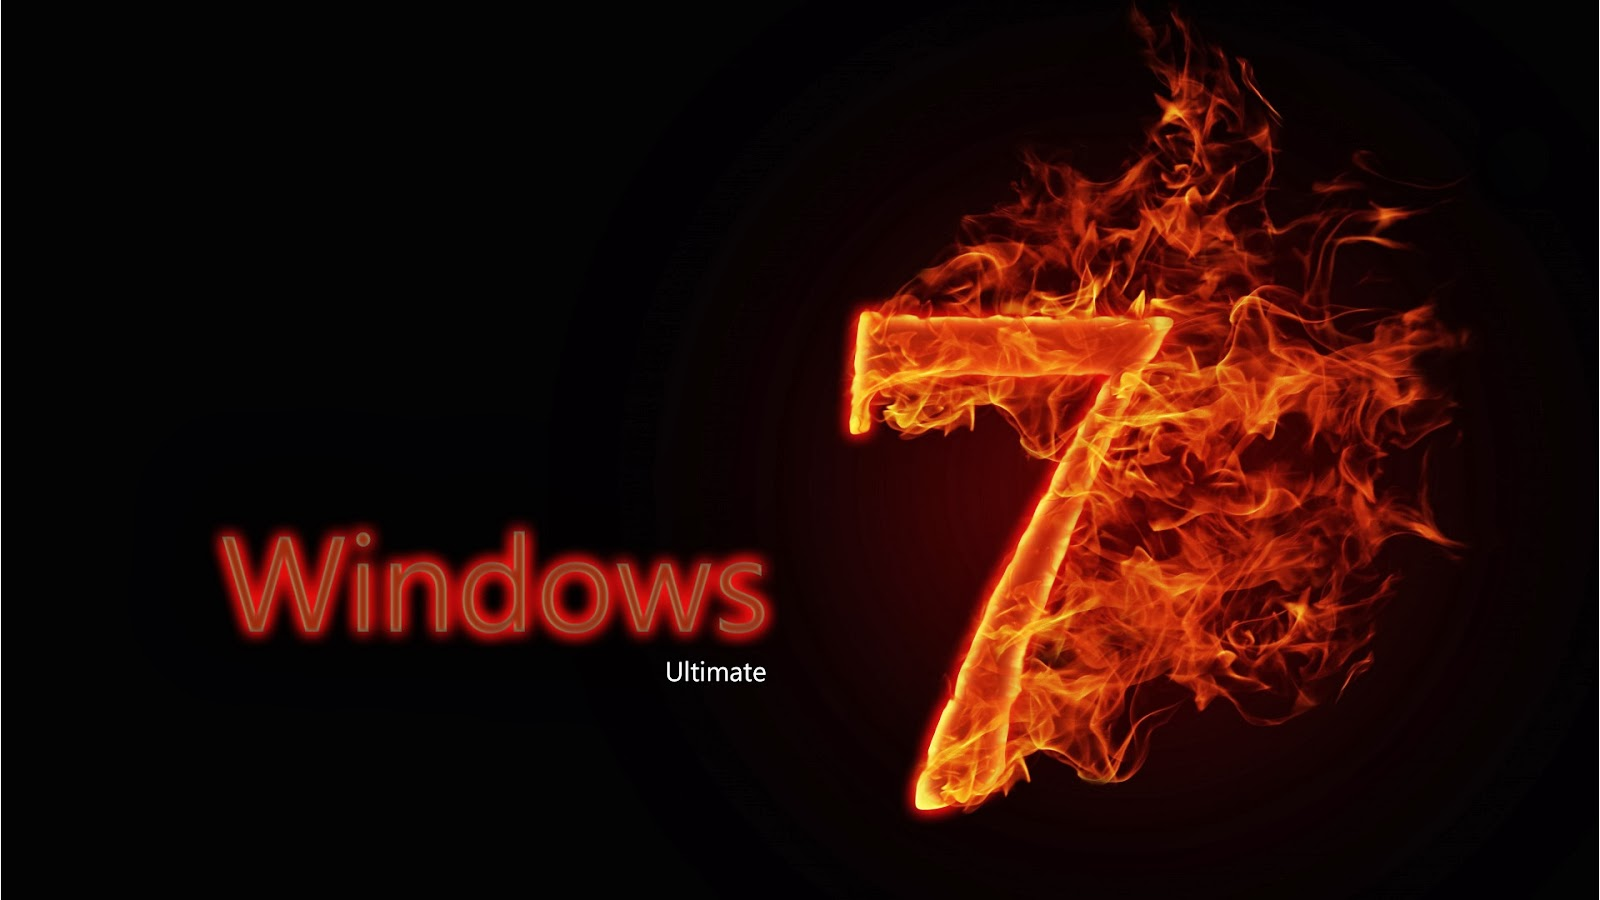 Windows 7 ultimate wallpapers hindi motivational quotes - Windows 7 love wallpapers ...